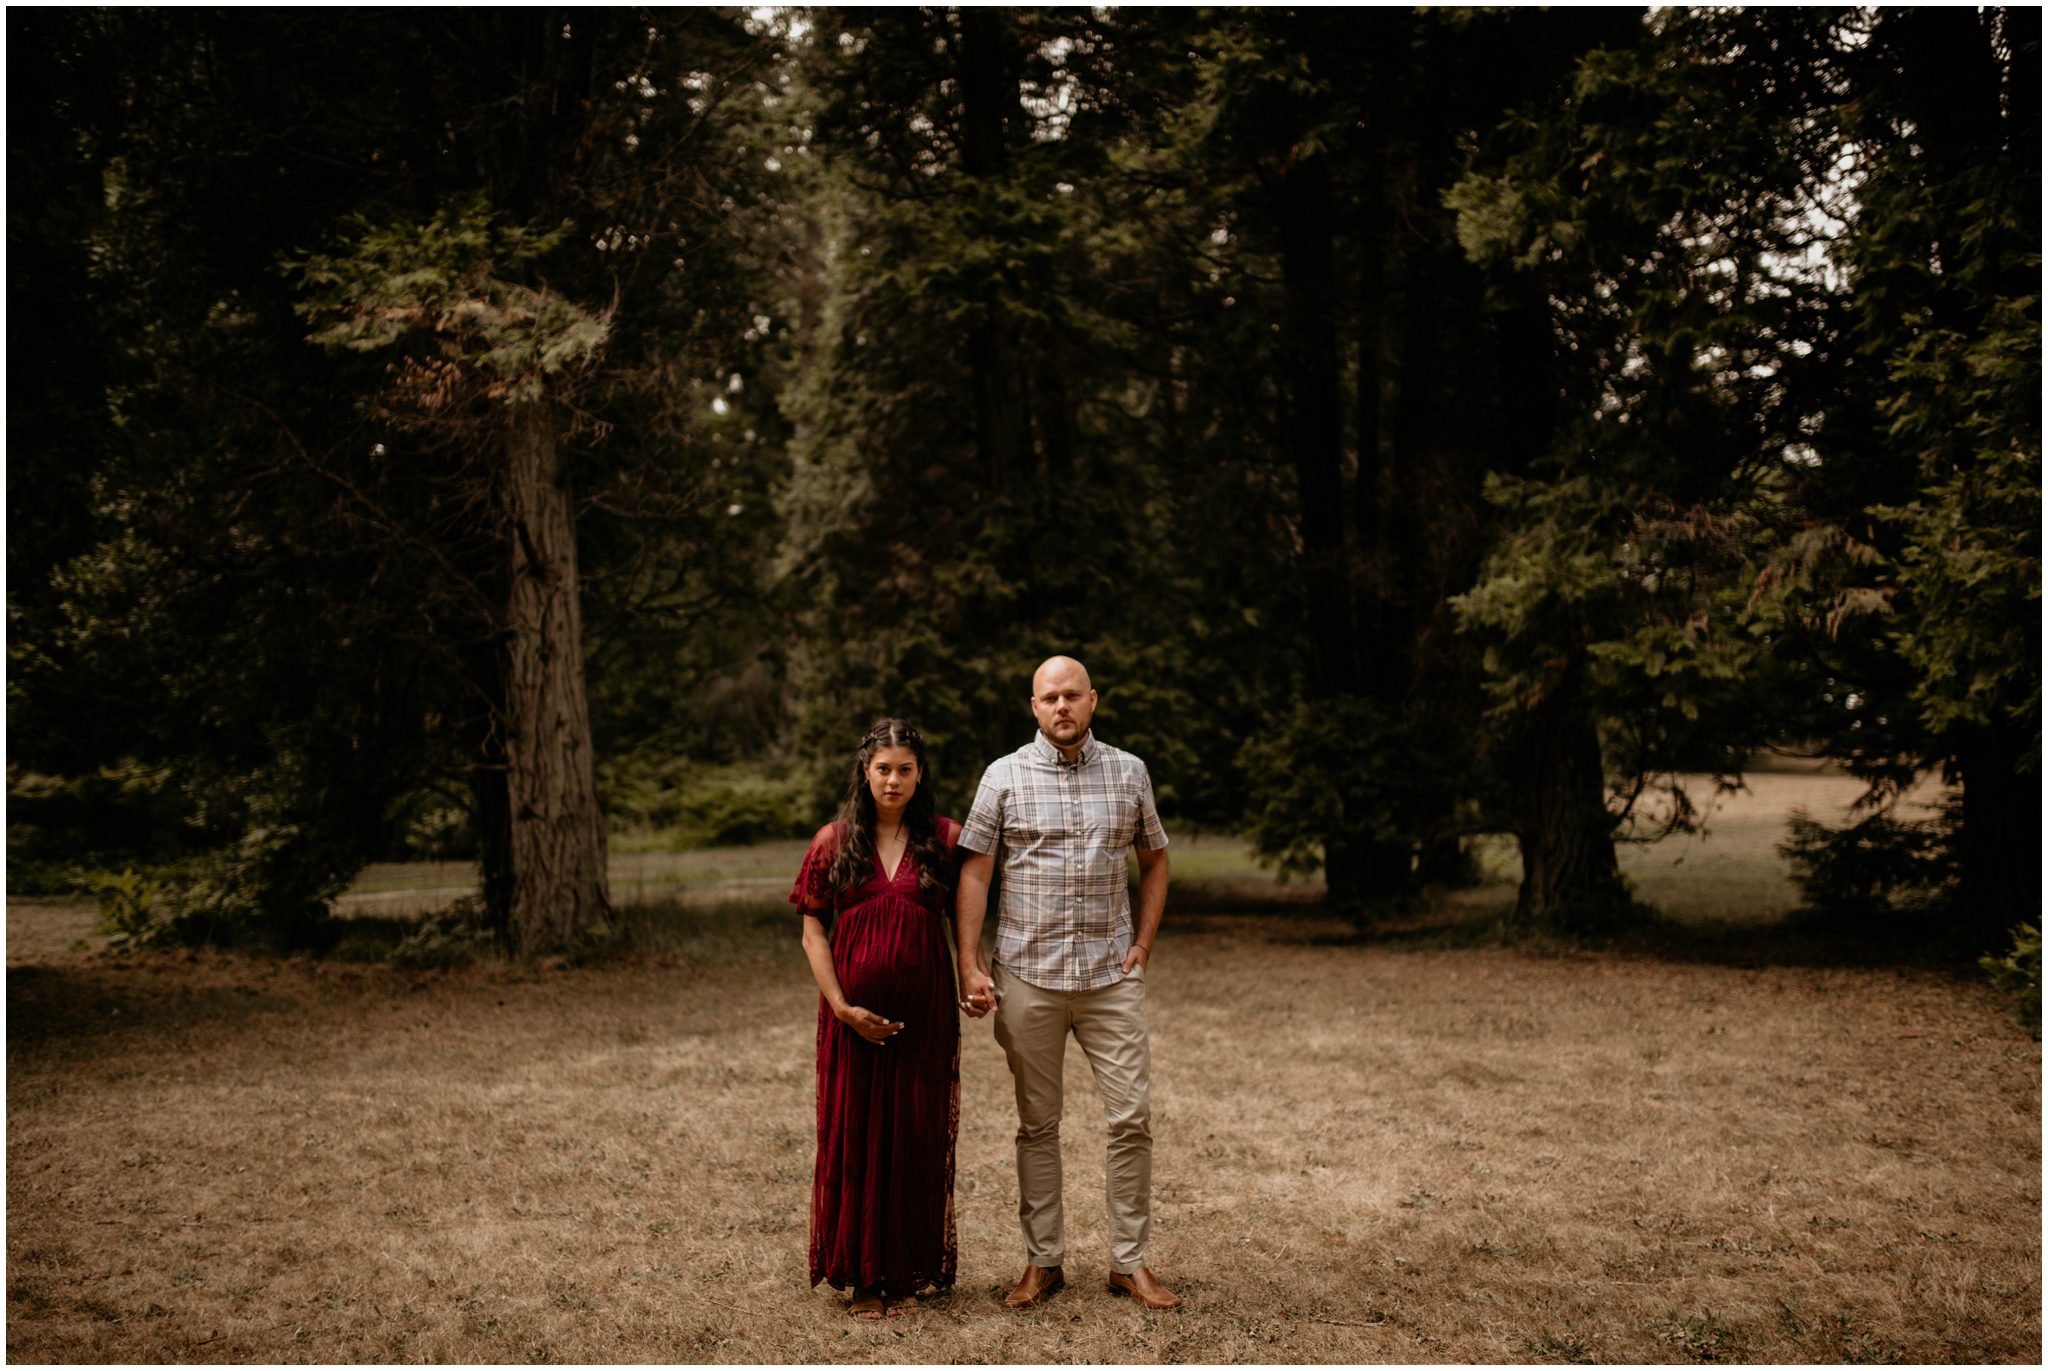 caitlin-jake-maternity-session-seattle-portrait-photographer-001.jpg